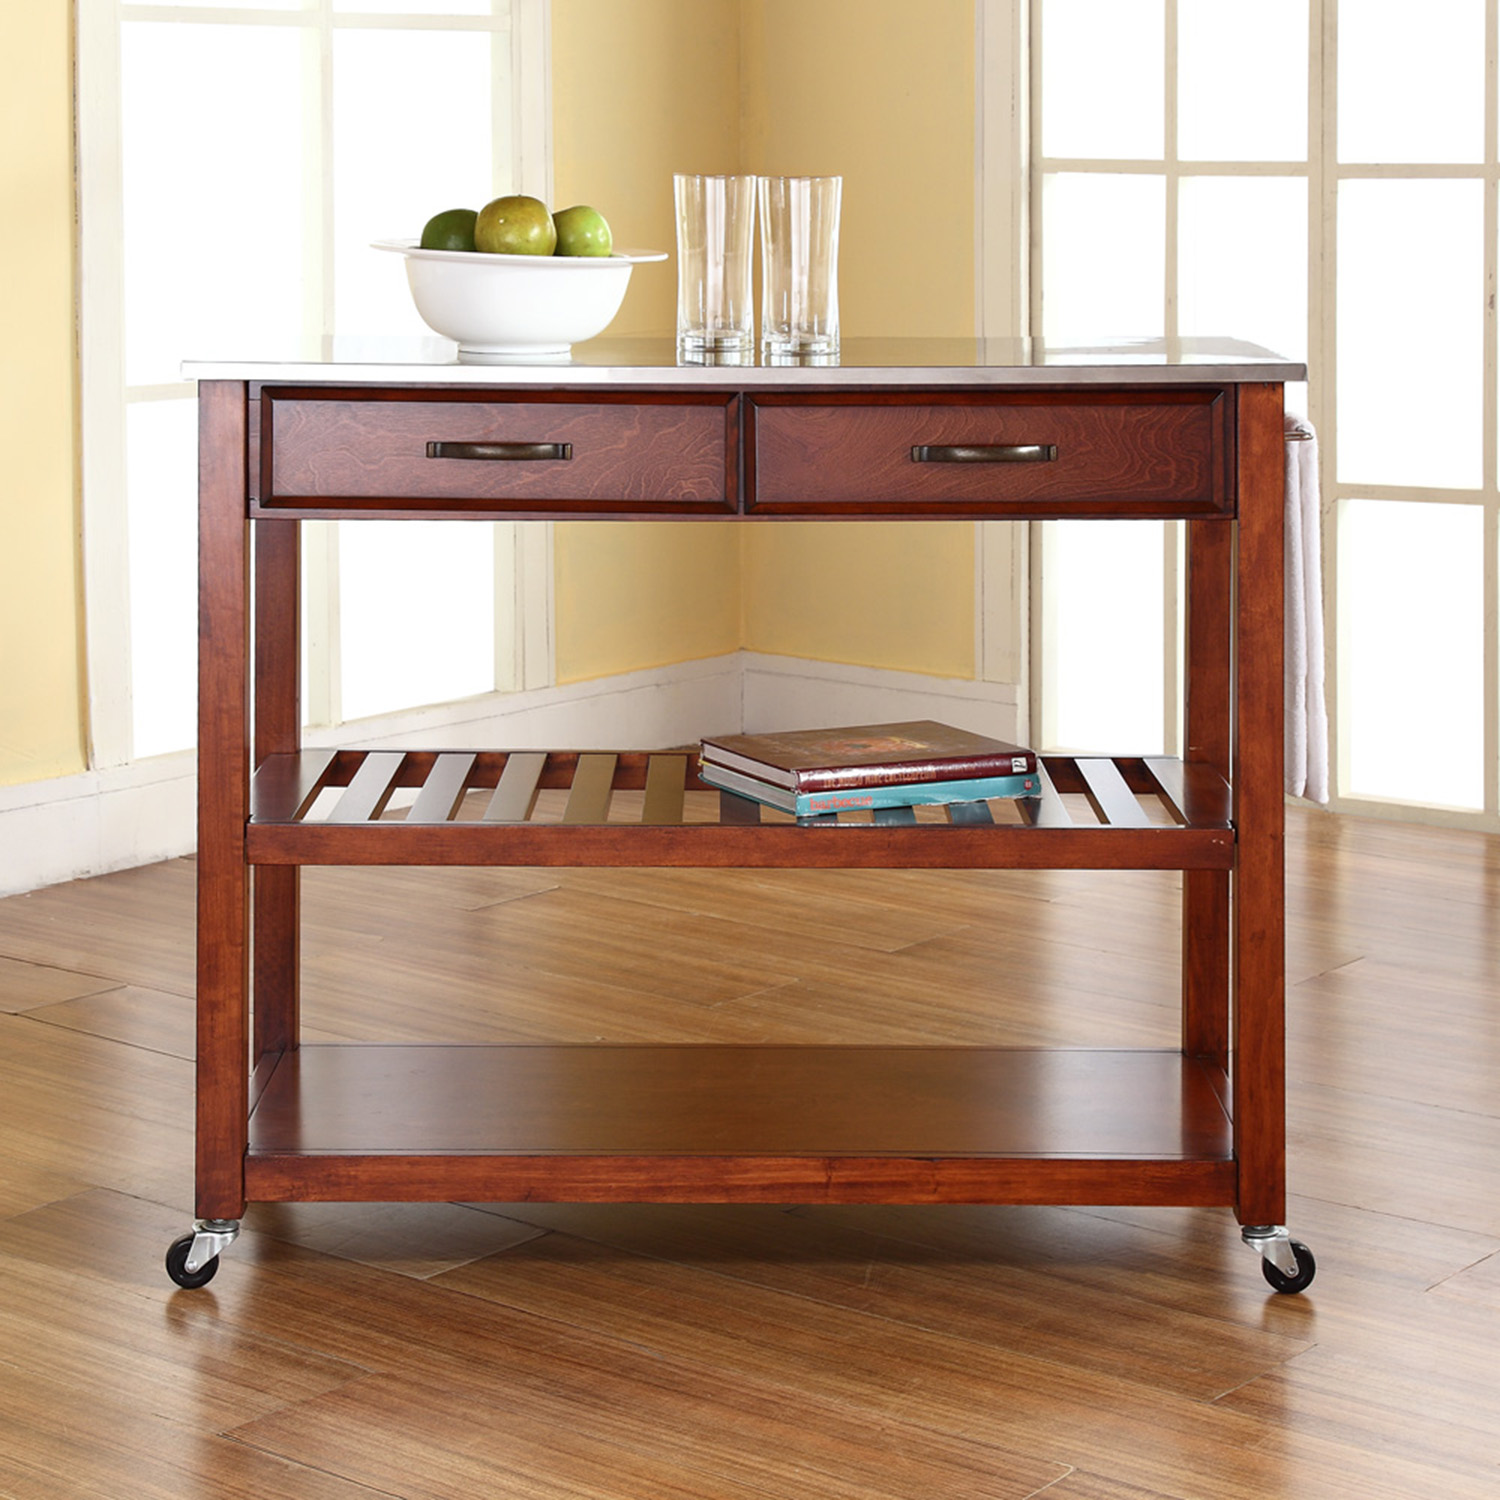 Stainless Steel Top Kitchen Island Cart - Classic Cherry - CROS-KF30052CH